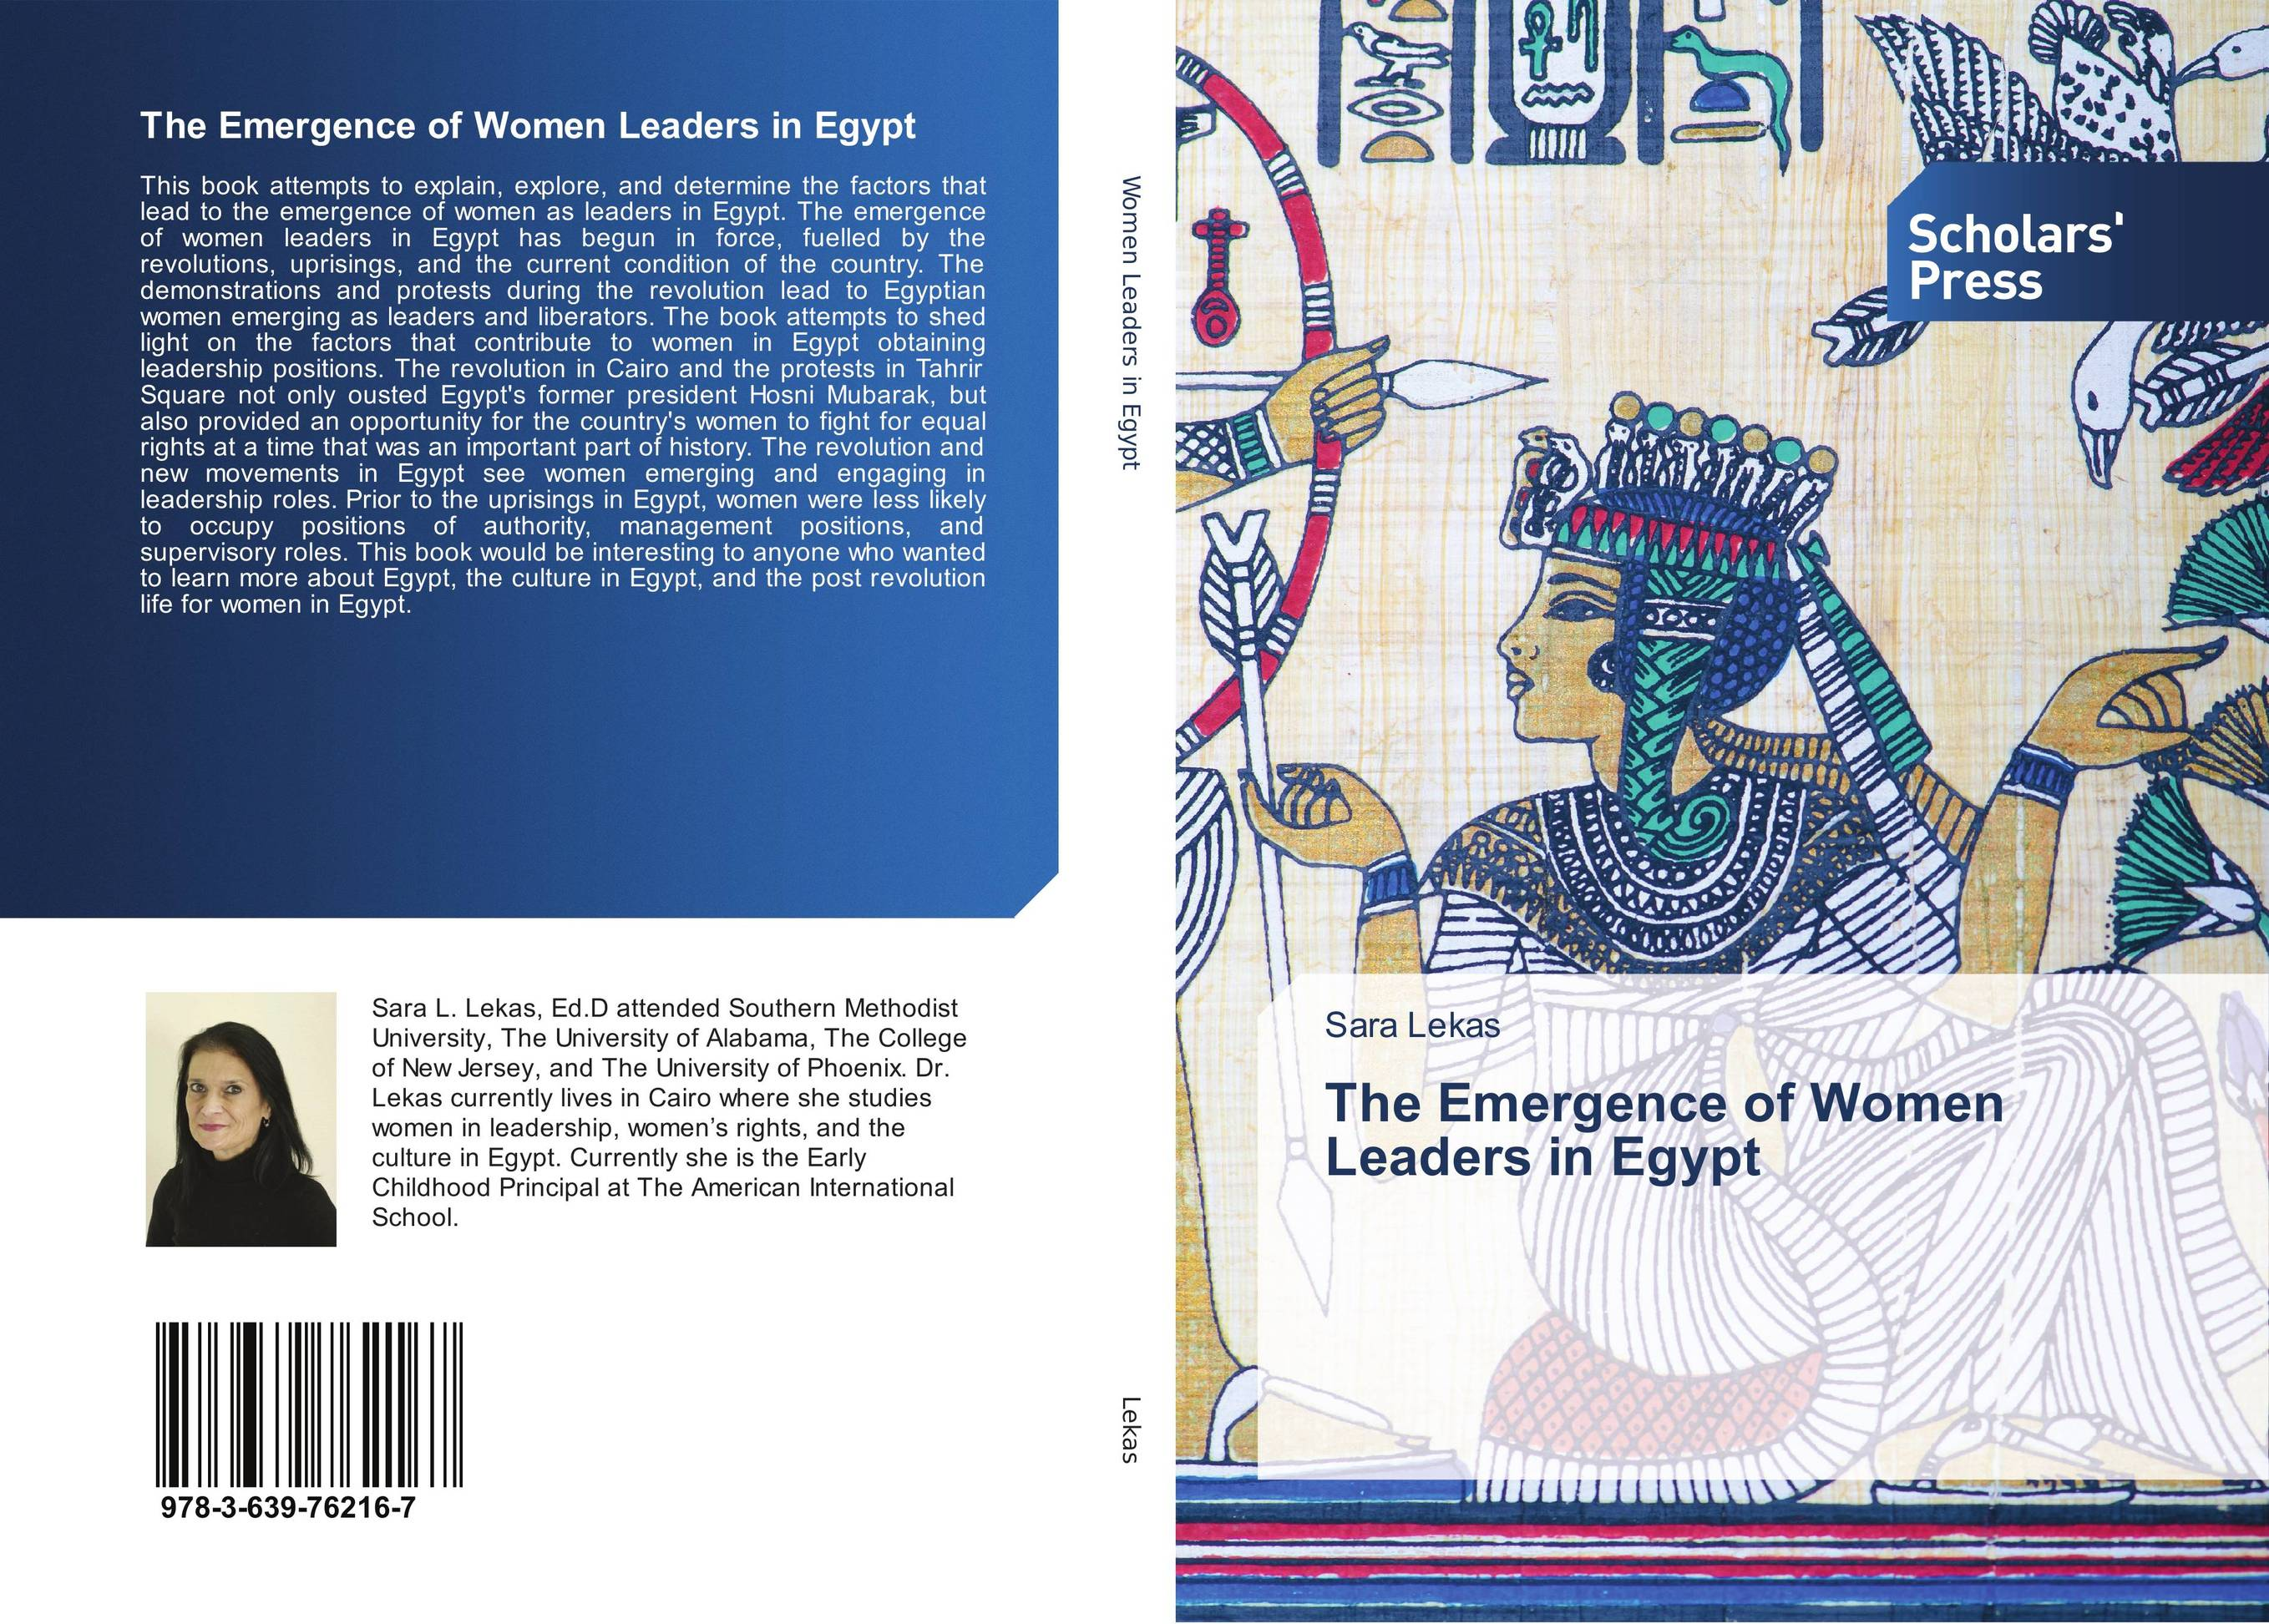 9783639762167 The Emergence of Women Leaders in Egypt Sara Lekas